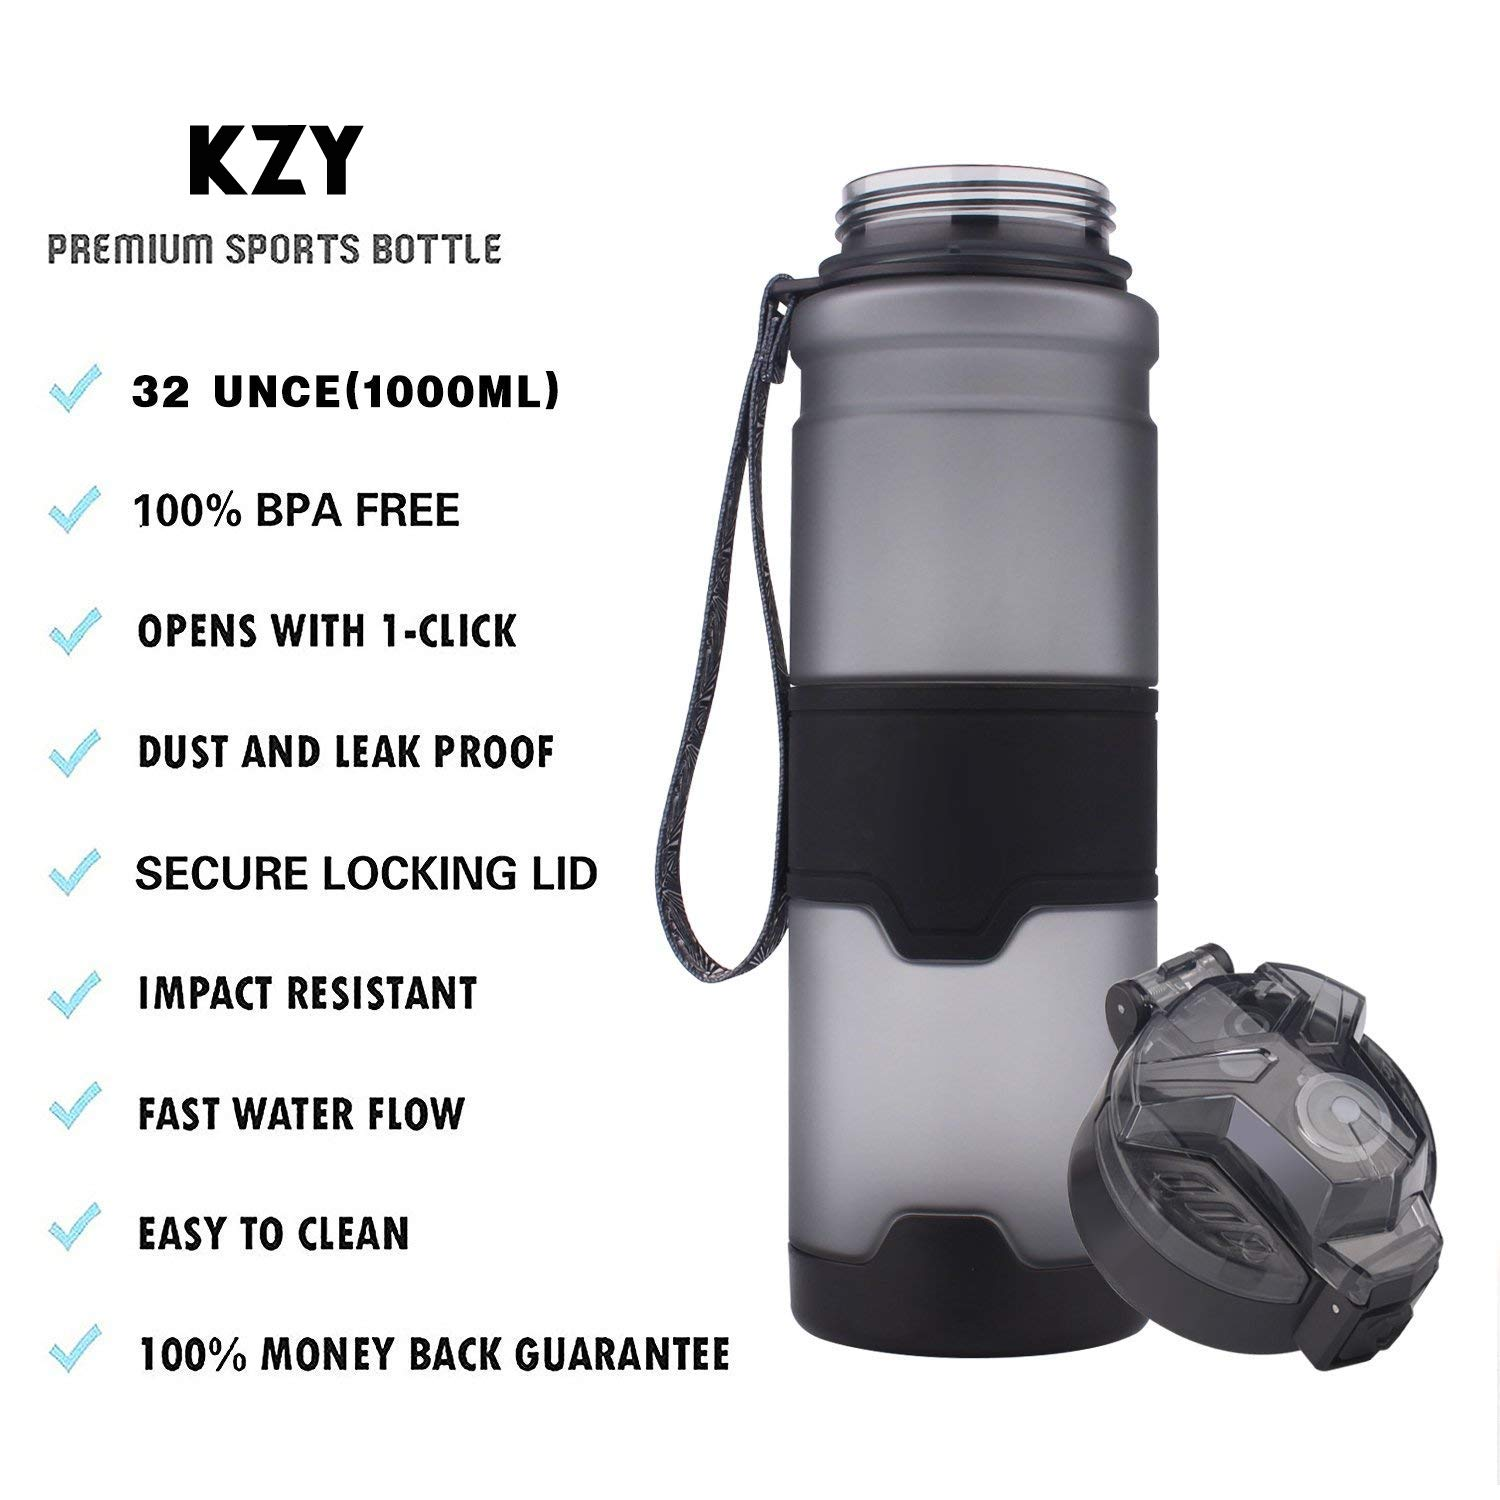 Kids//Adults Drink Bottles with Filter,Flip Top,Lockable Lid Open with 1 Click Kang Zhi Yuan BPA Free Leak Proof Plastic Bottles for Outdoors,Camping,Cycling,Fitness,Gym,Yoga